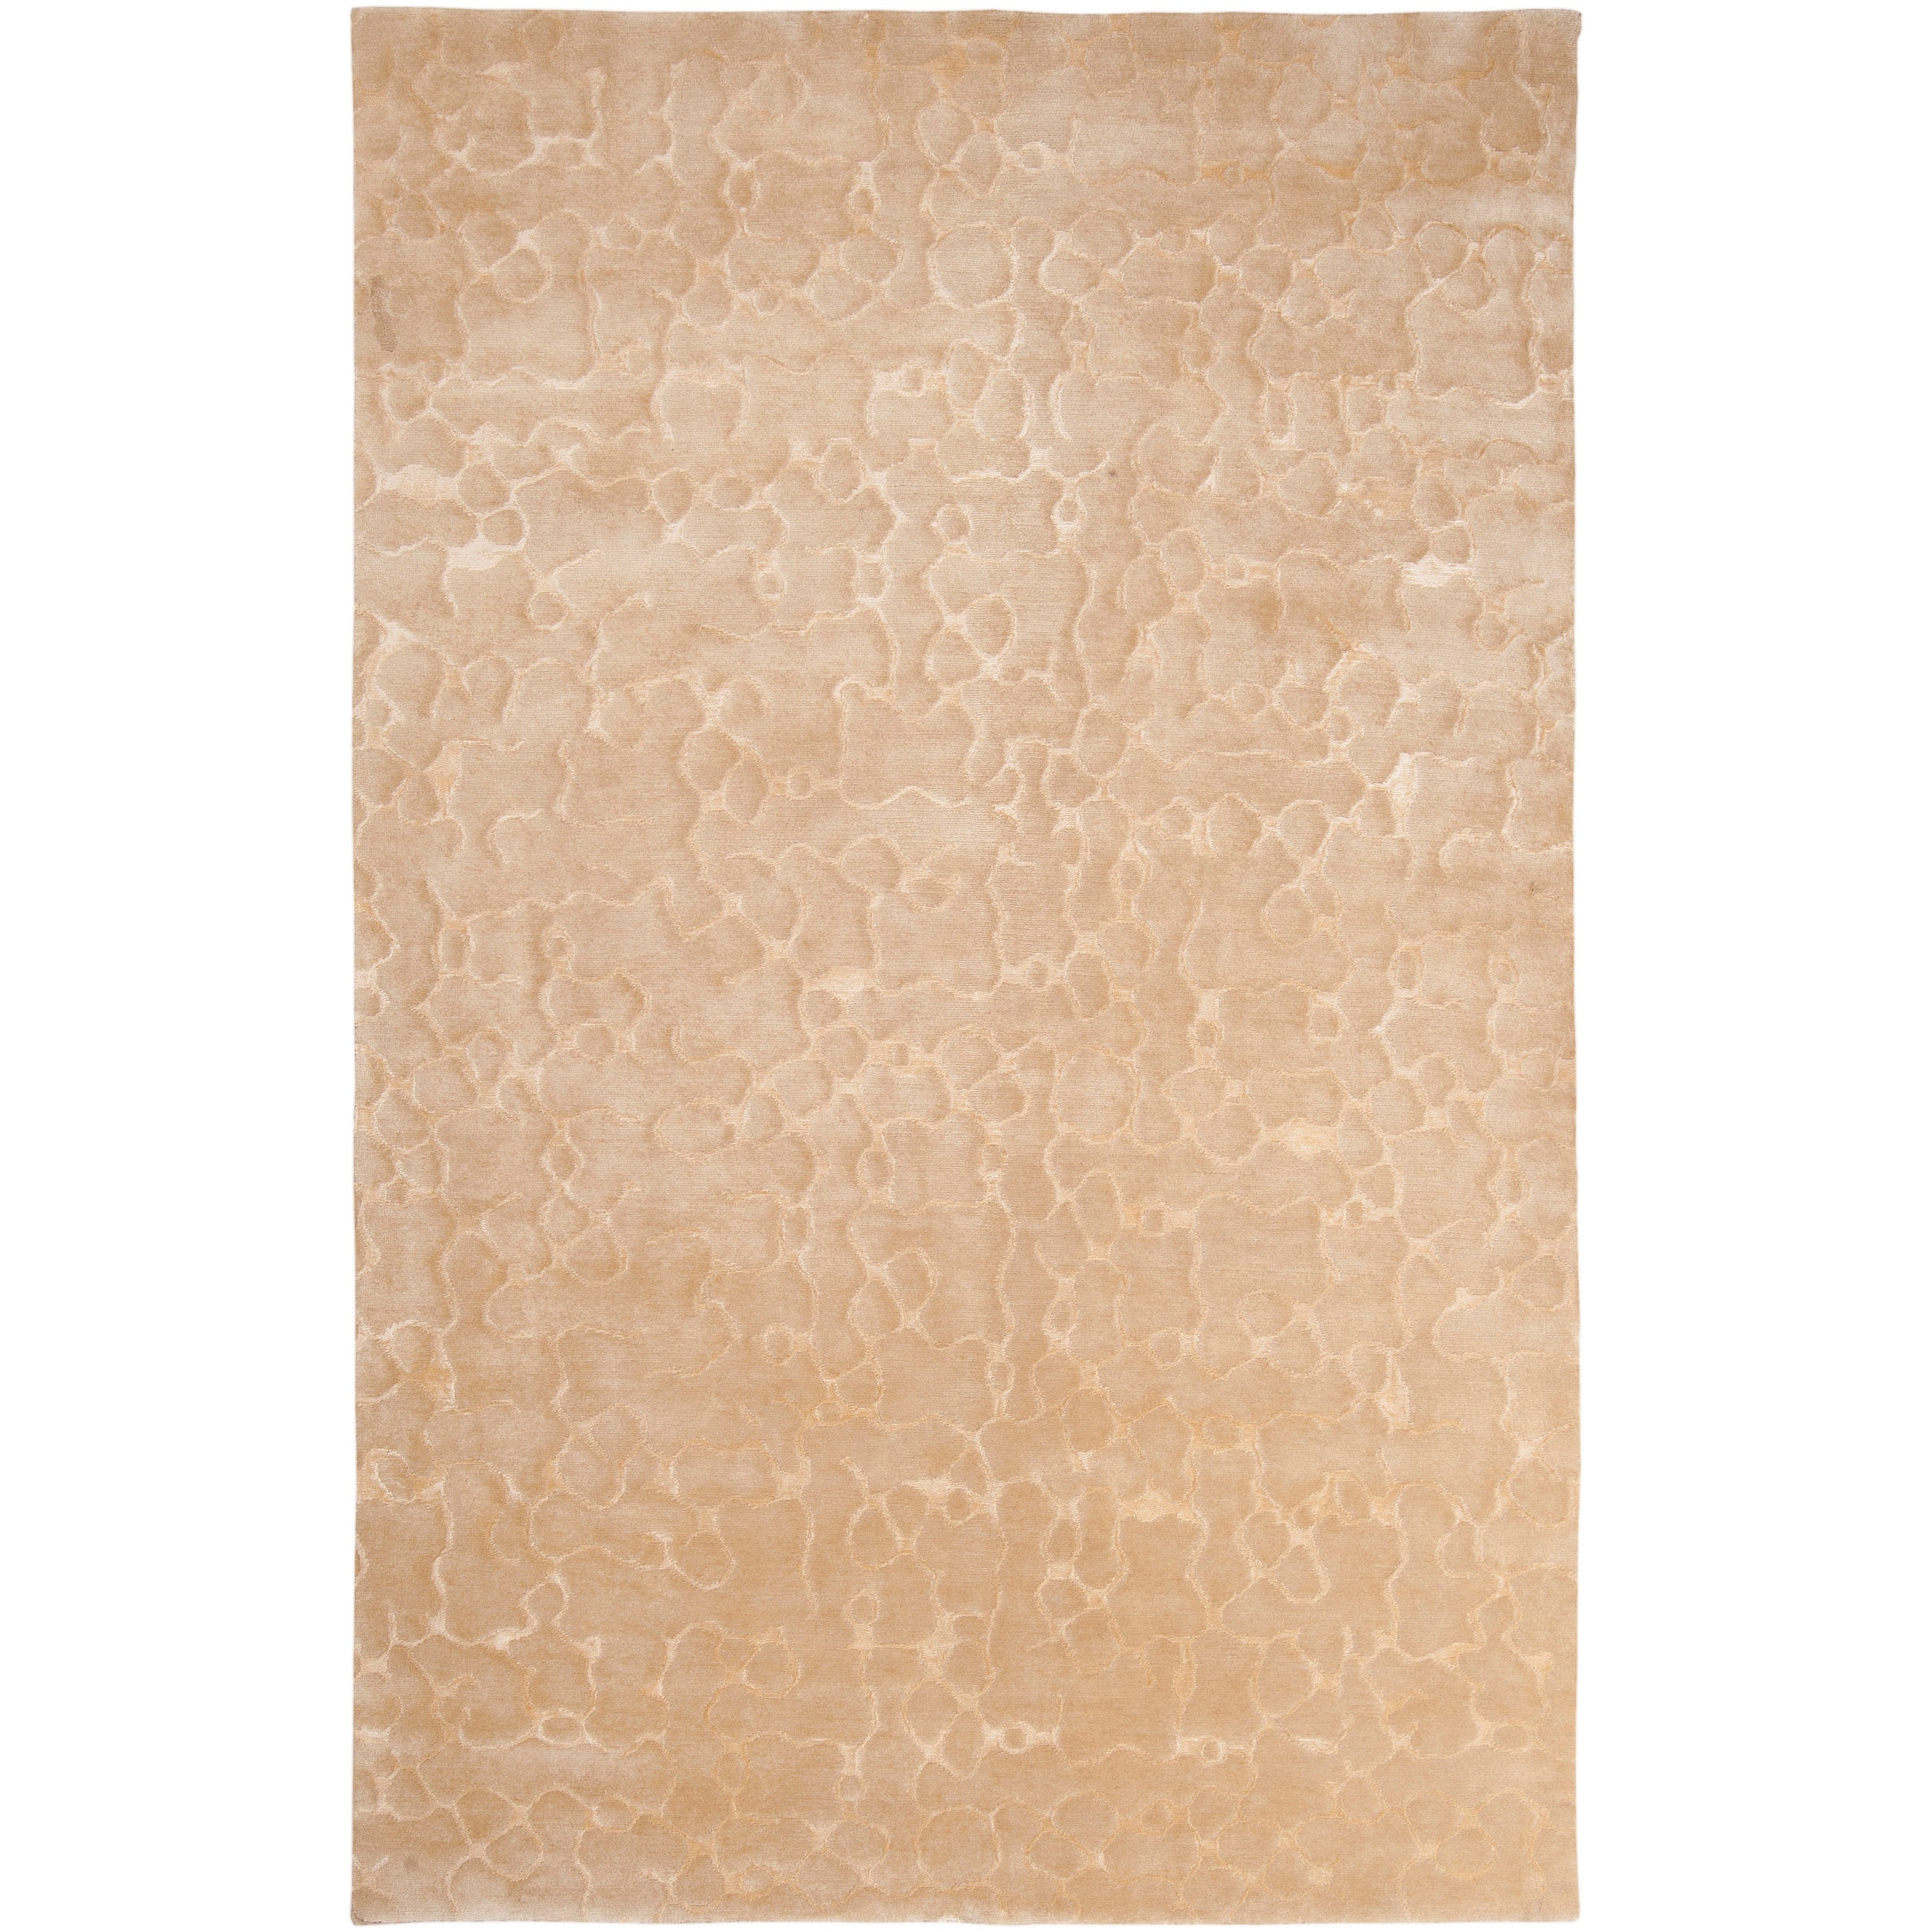 Hand-knotted Kimball Abstract Design Wool Rug (5' x 8') - Thumbnail 0